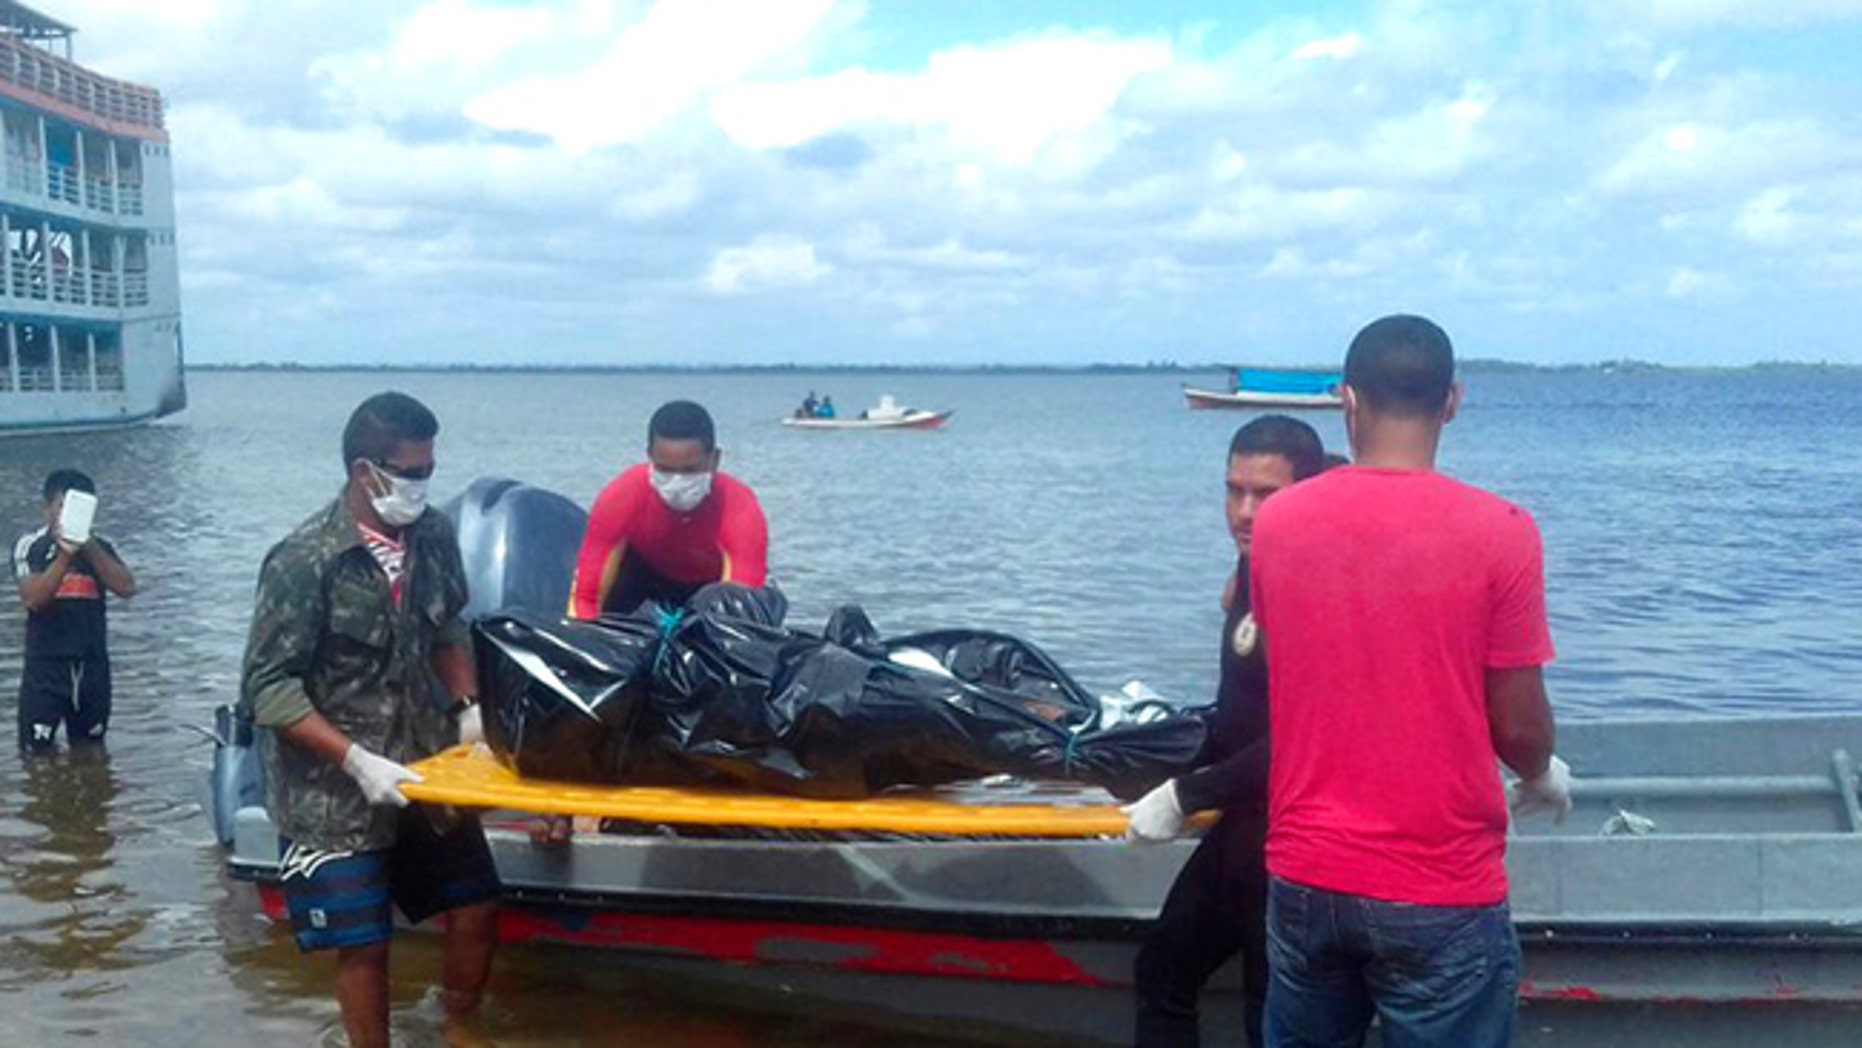 Rescue workers carry a body recovered from the Xingu River in this image released by Brazil's Secretary of Social Communication.